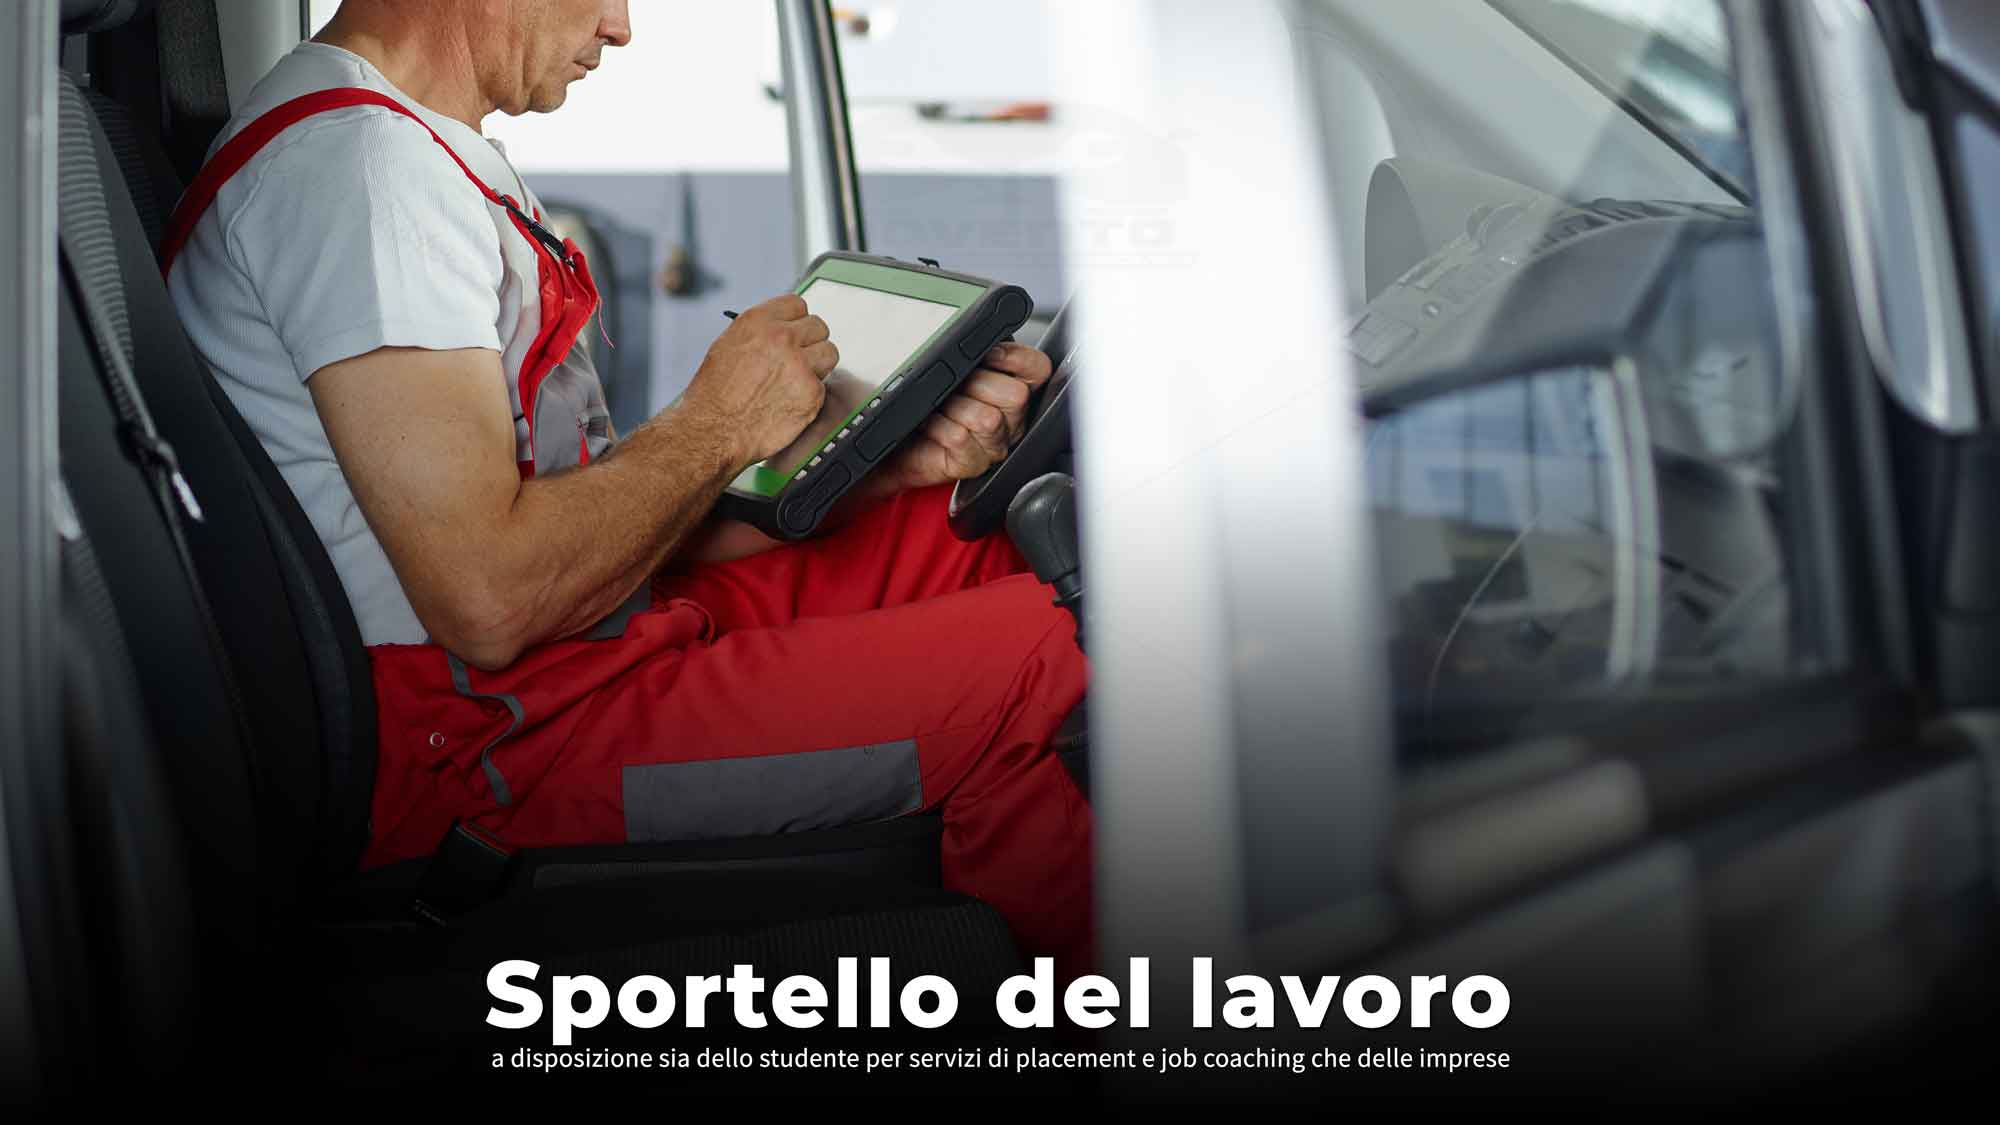 Sportello del lavoro, placement e job coaching